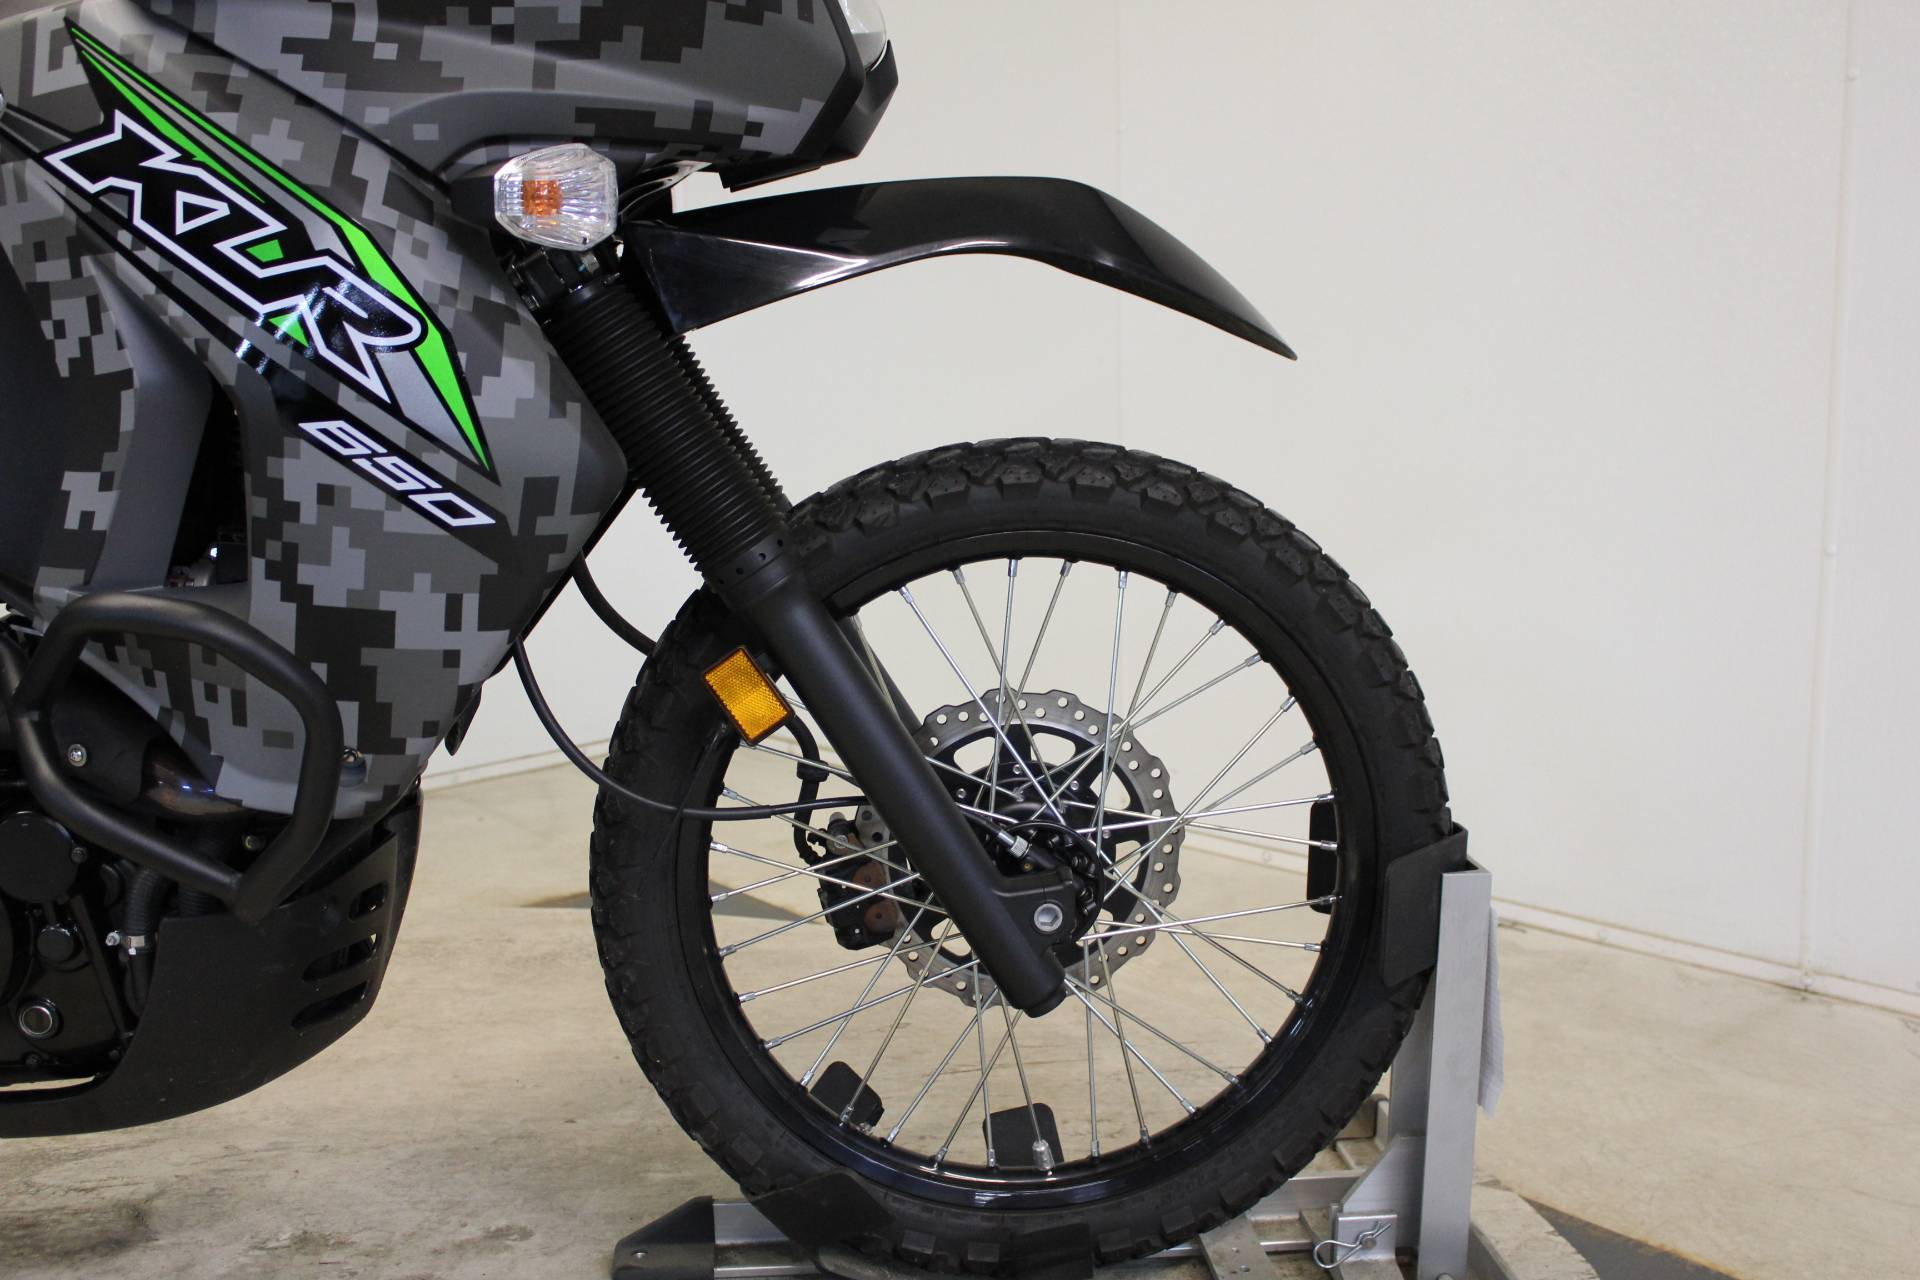 2018 Kawasaki KLR 650 Camo in Pittsfield, Massachusetts - Photo 11